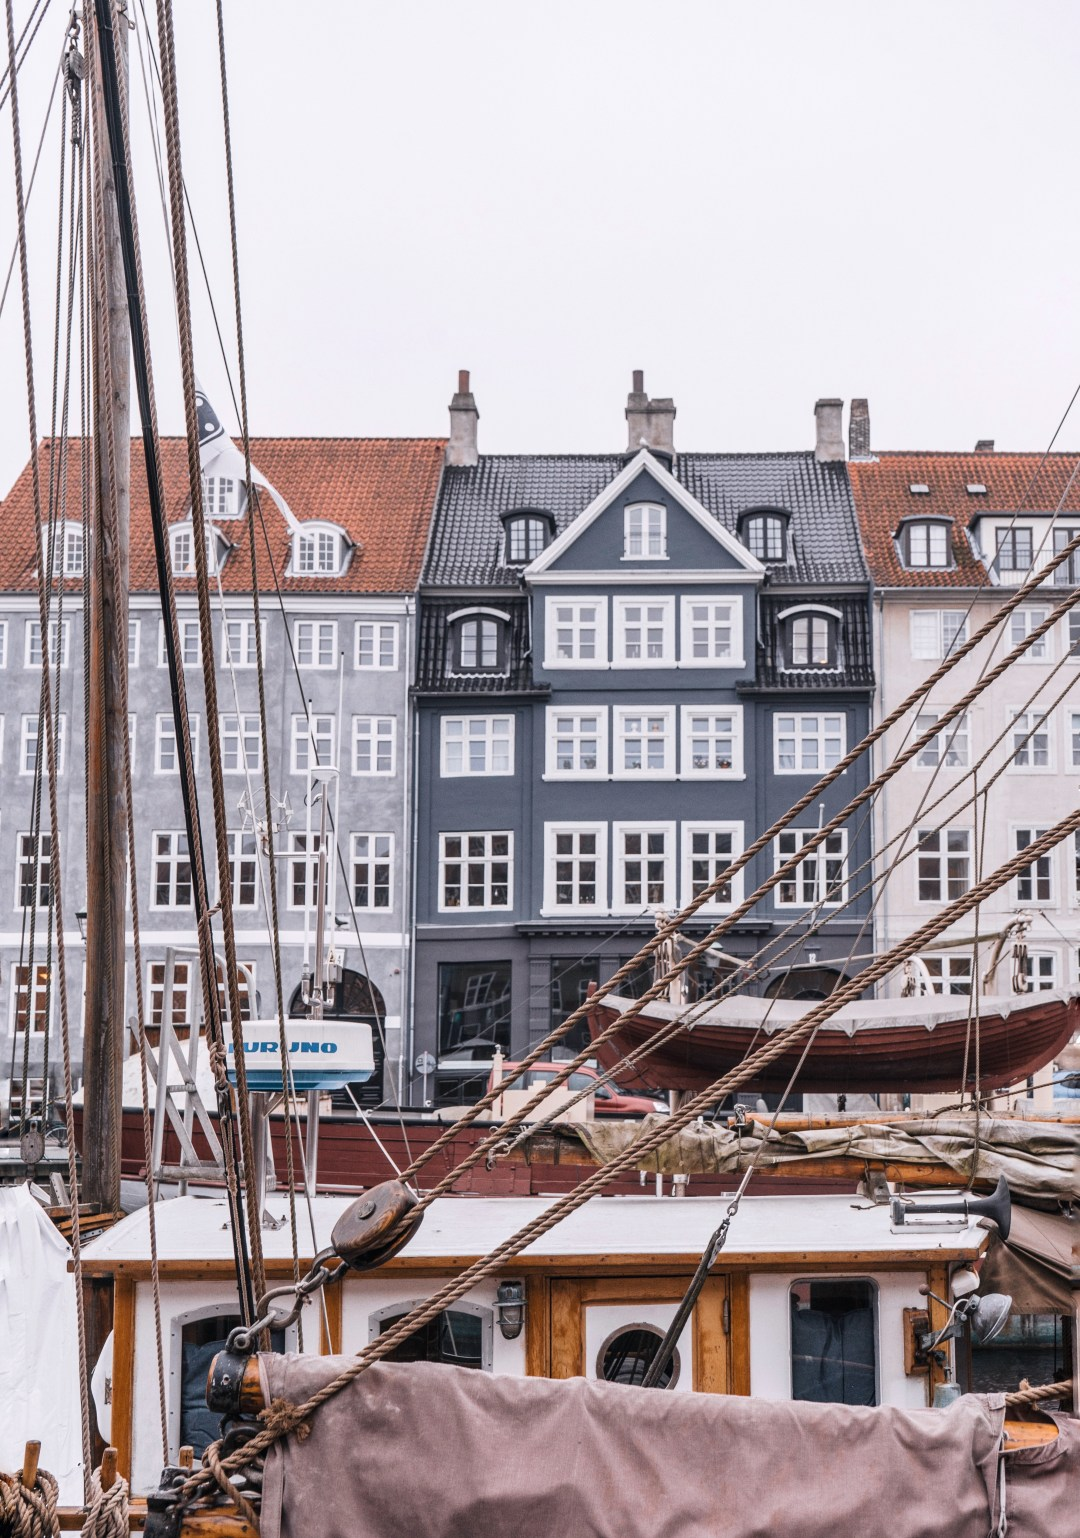 7 Cozy Experiences To Have In Denmark